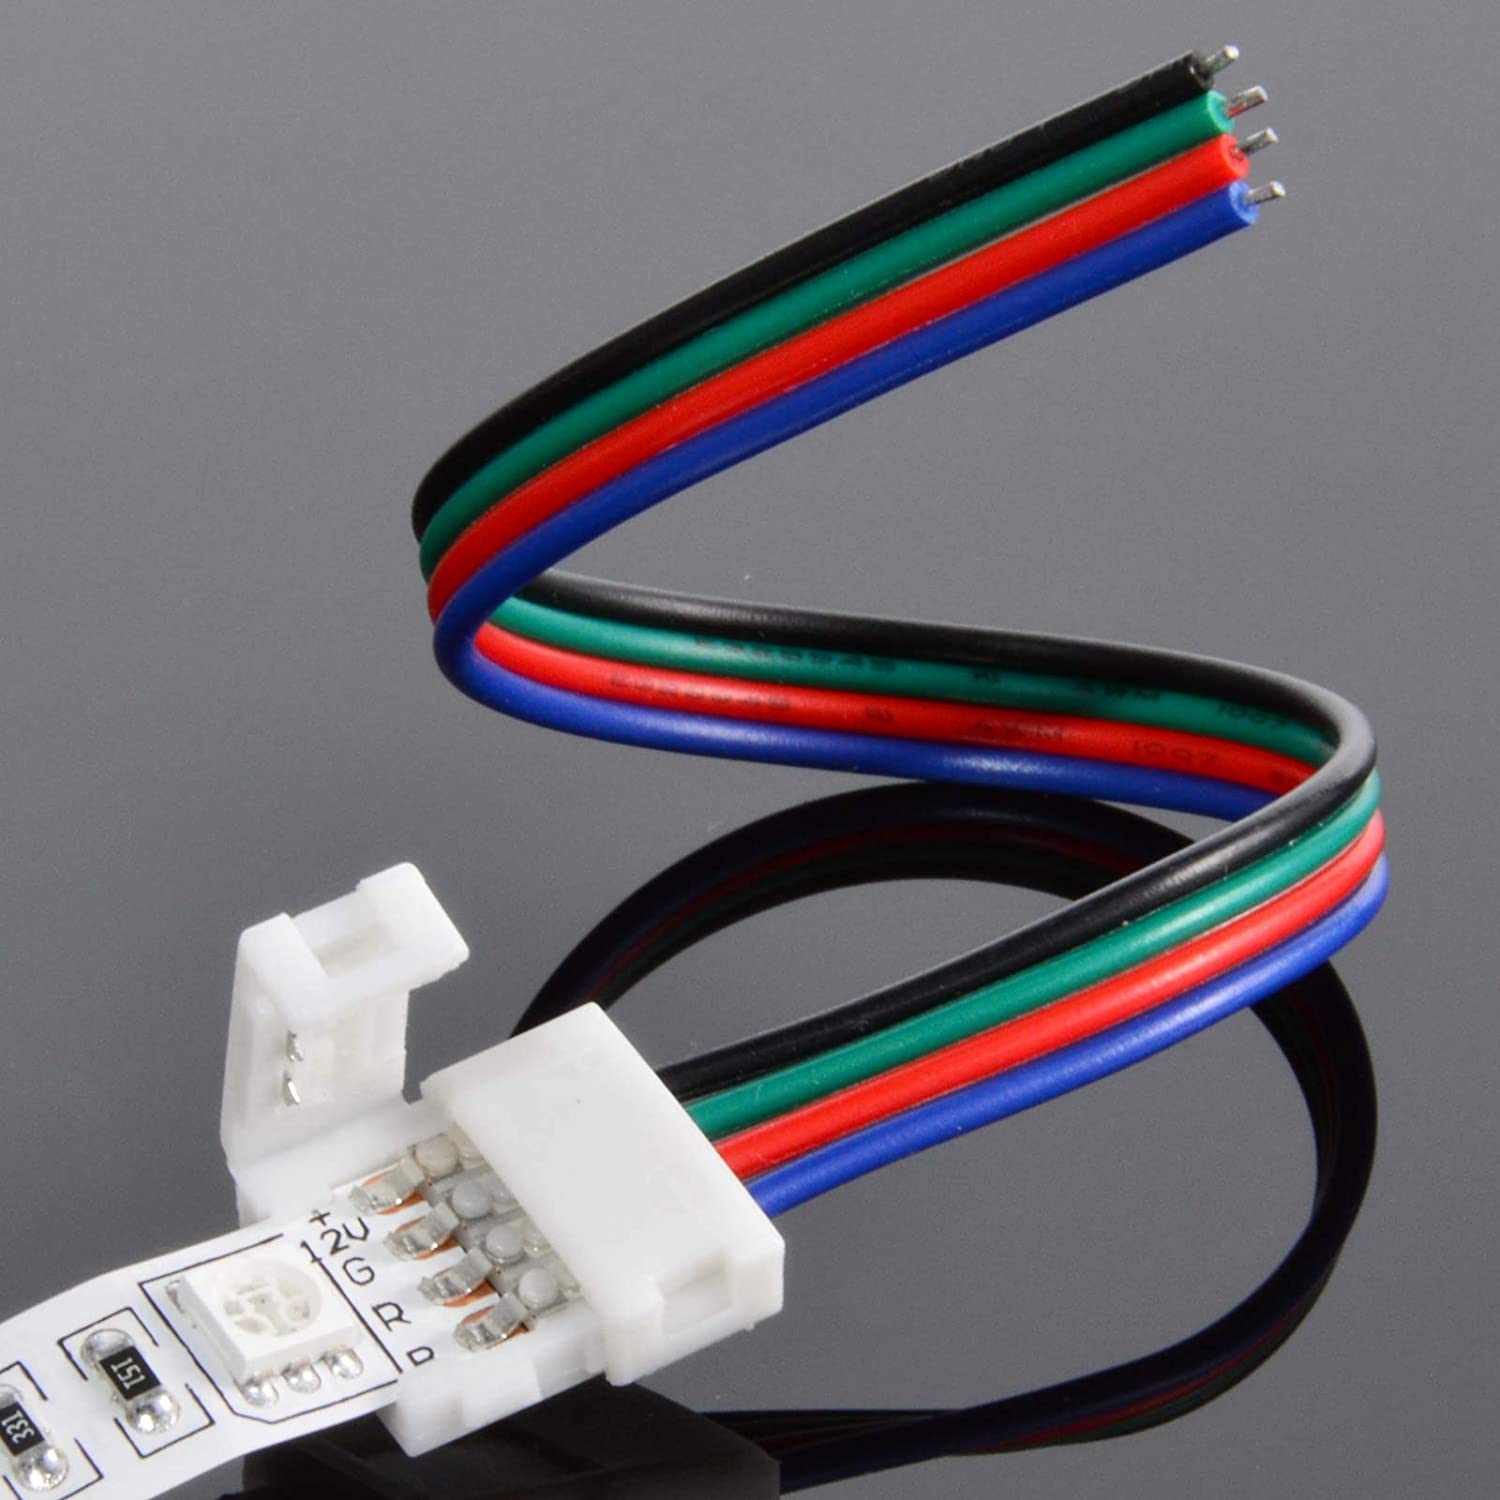 Detroit Mall ABI 10mm Solderless 4-Wire Connector Clip for 5050 LED Strip RGB Popular popular